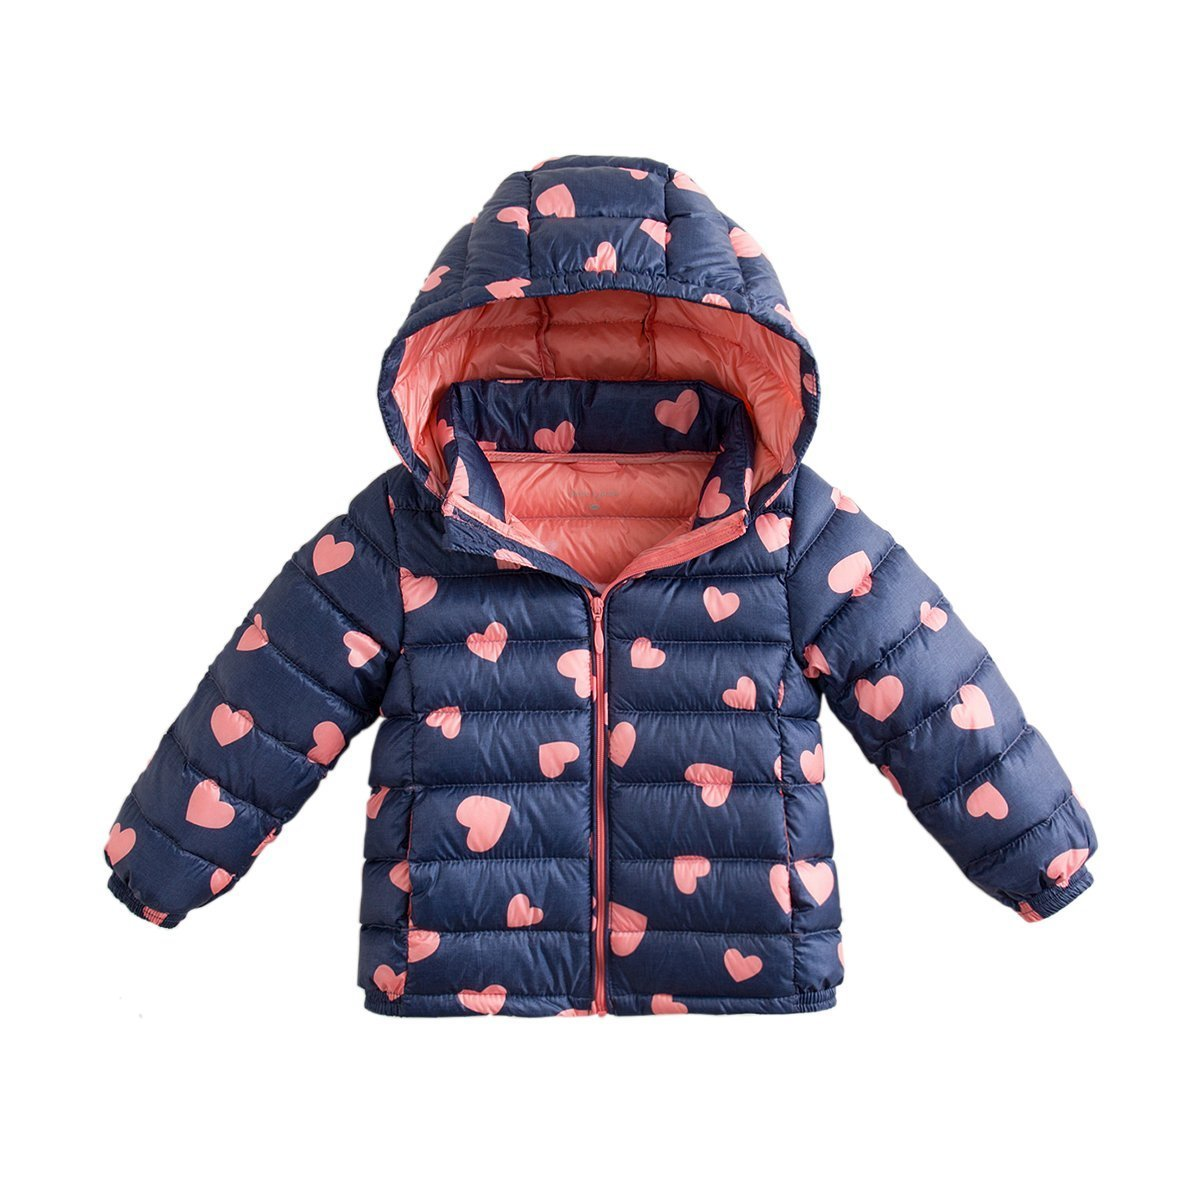 marc janie Baby Boys Girls Kids' Outerwear Ultra Light Down Jacket with Removable Hood 6T Blue Pink Love by marc janie (Image #7)